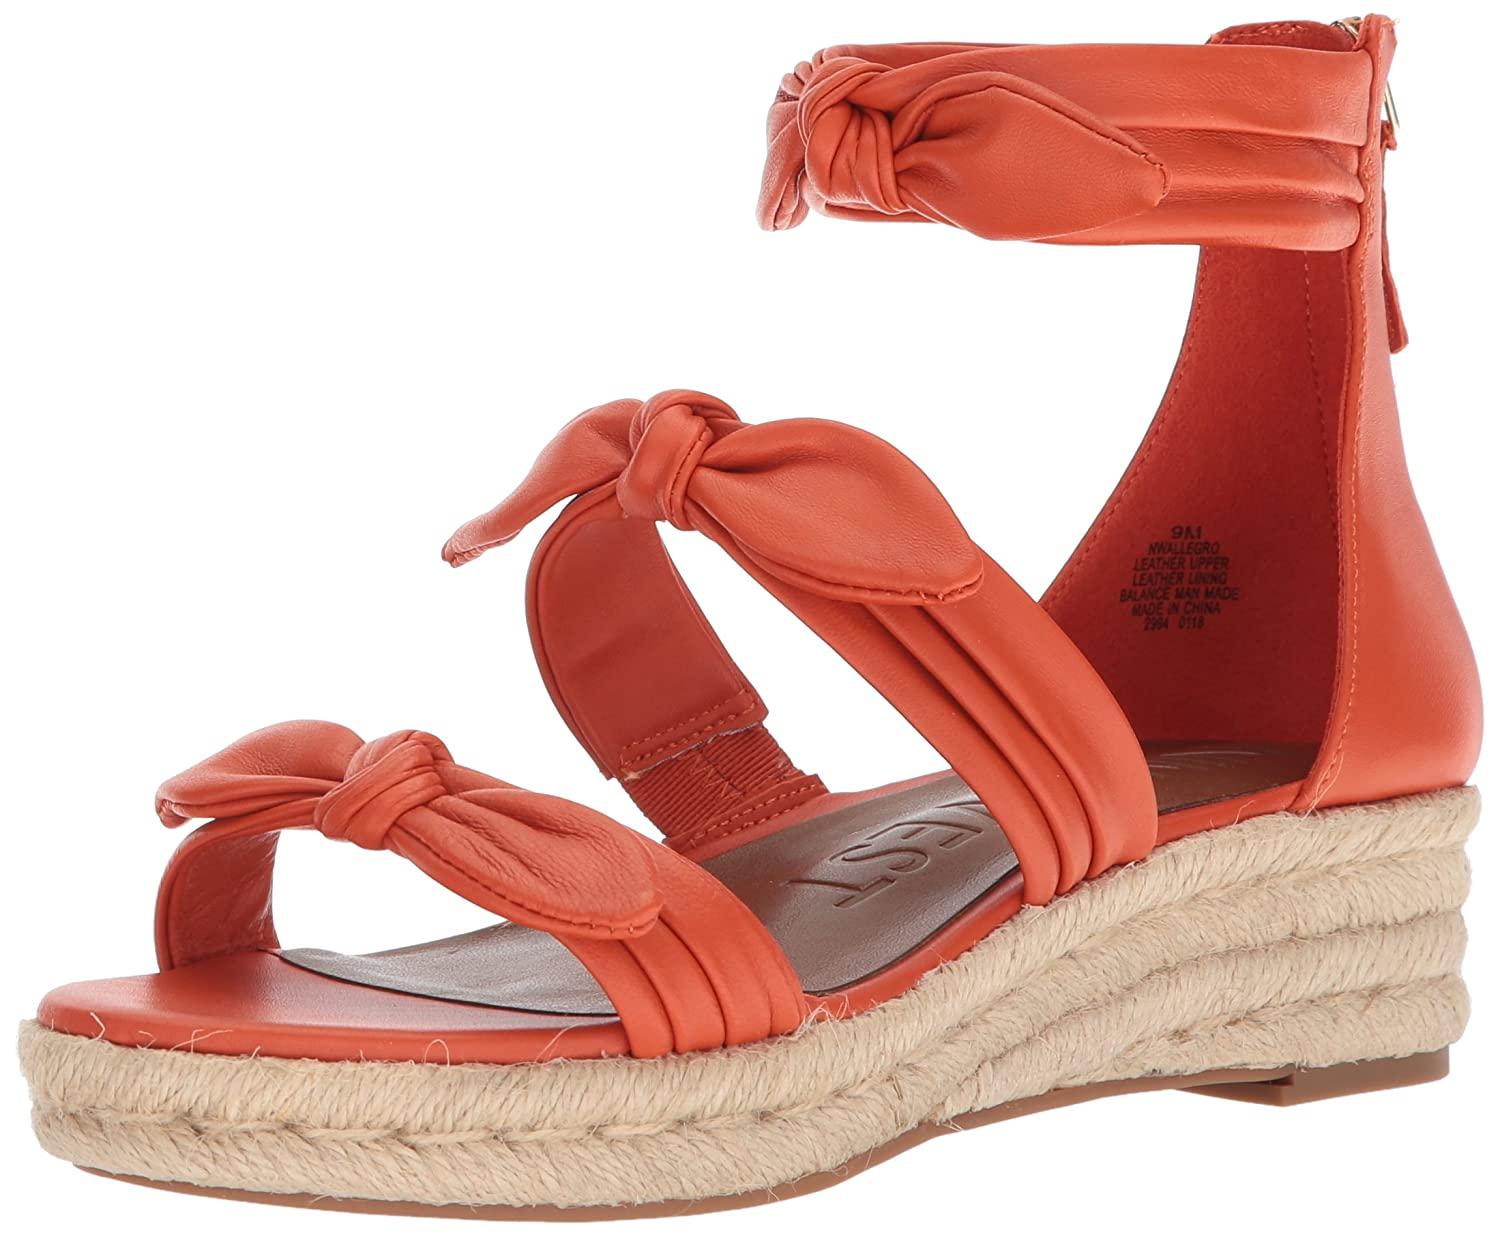 Nine Wedge West Women's Allegro Leather Wedge Nine Sandal B074PT56BY 9 B(M) US|Orange Leather 6318db